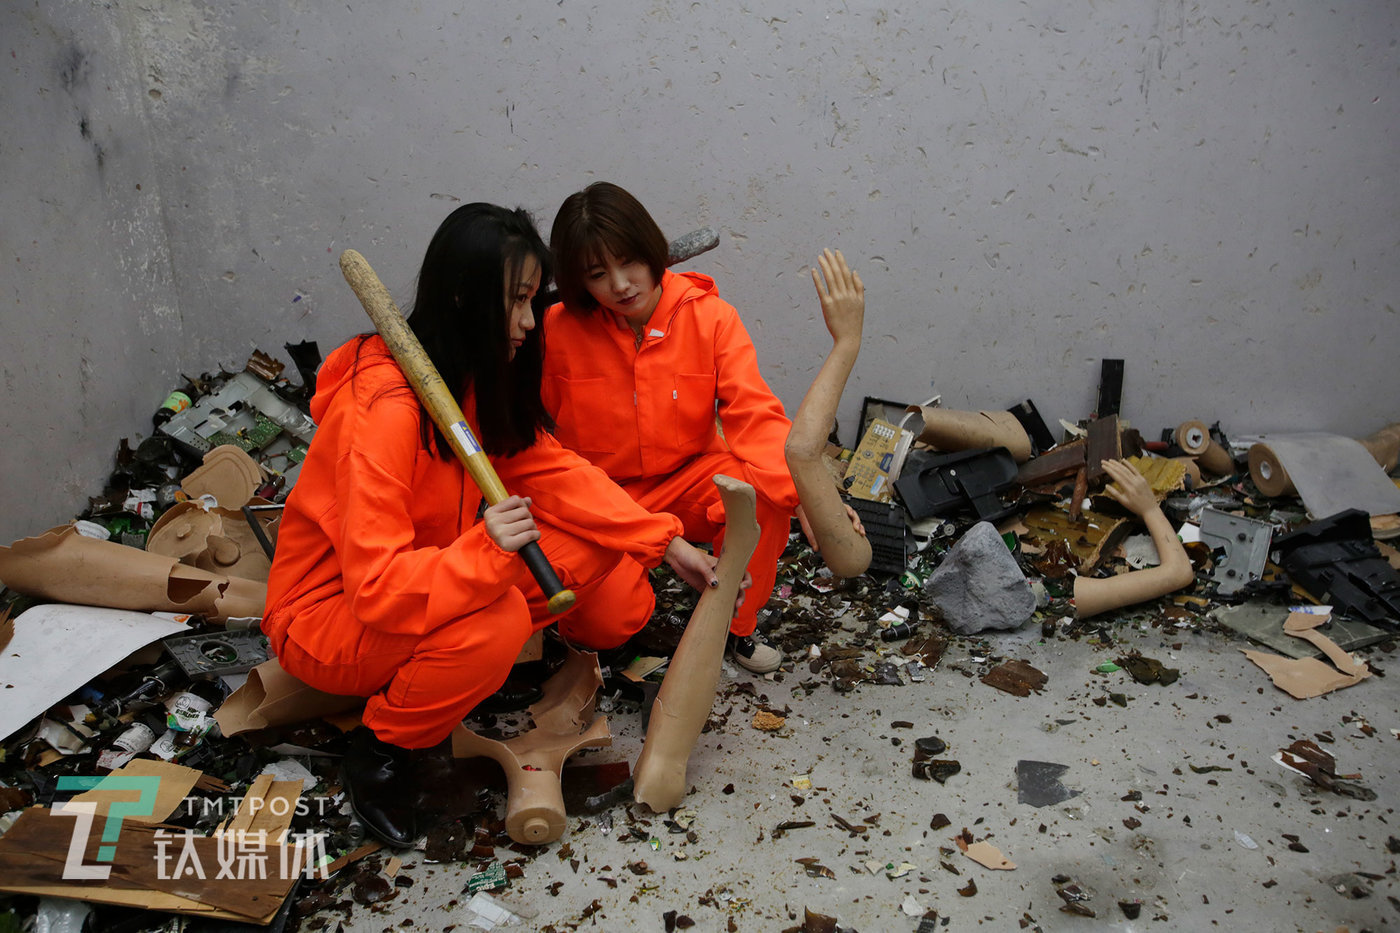 Two female customers are having their photo taken in the rage room. Soon after its opening, the rage room has become an attraction for internet blogebrities to tick their bucket lists. Many customers come to experience the rage room after seeing online short clips about it.